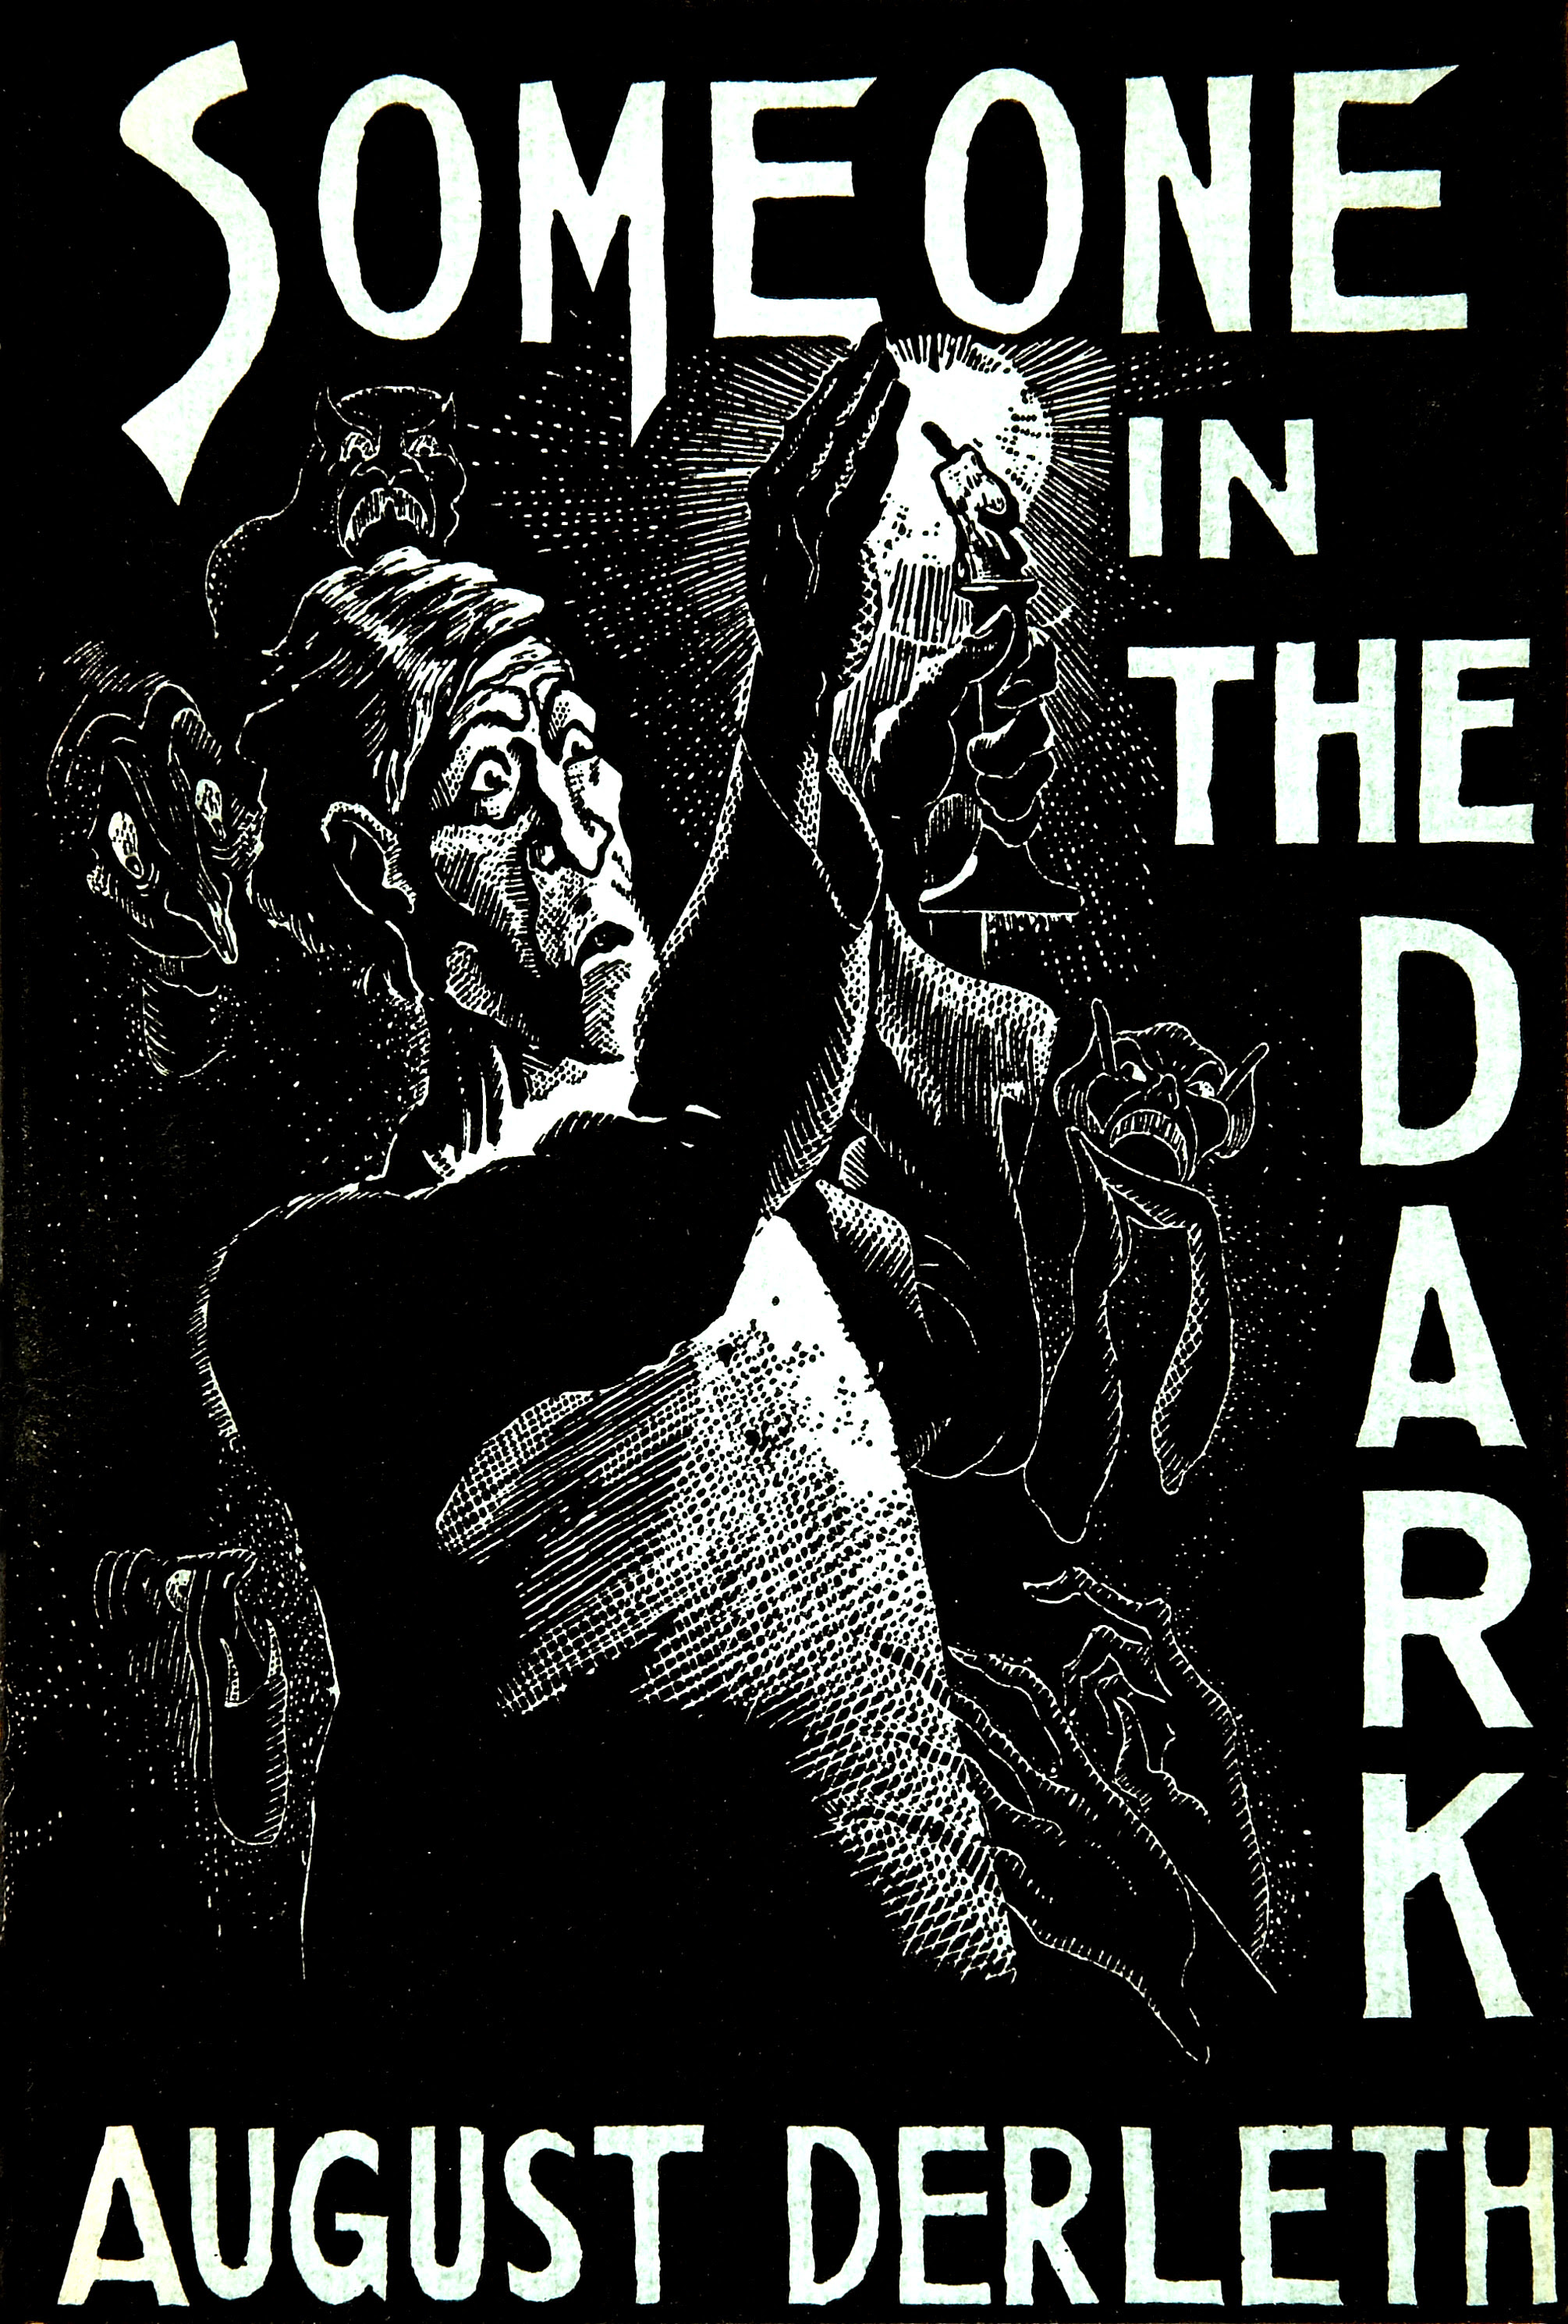 Frank Utpatel cover for August Derleth's Someone in the Dark, Arkham House, 1941